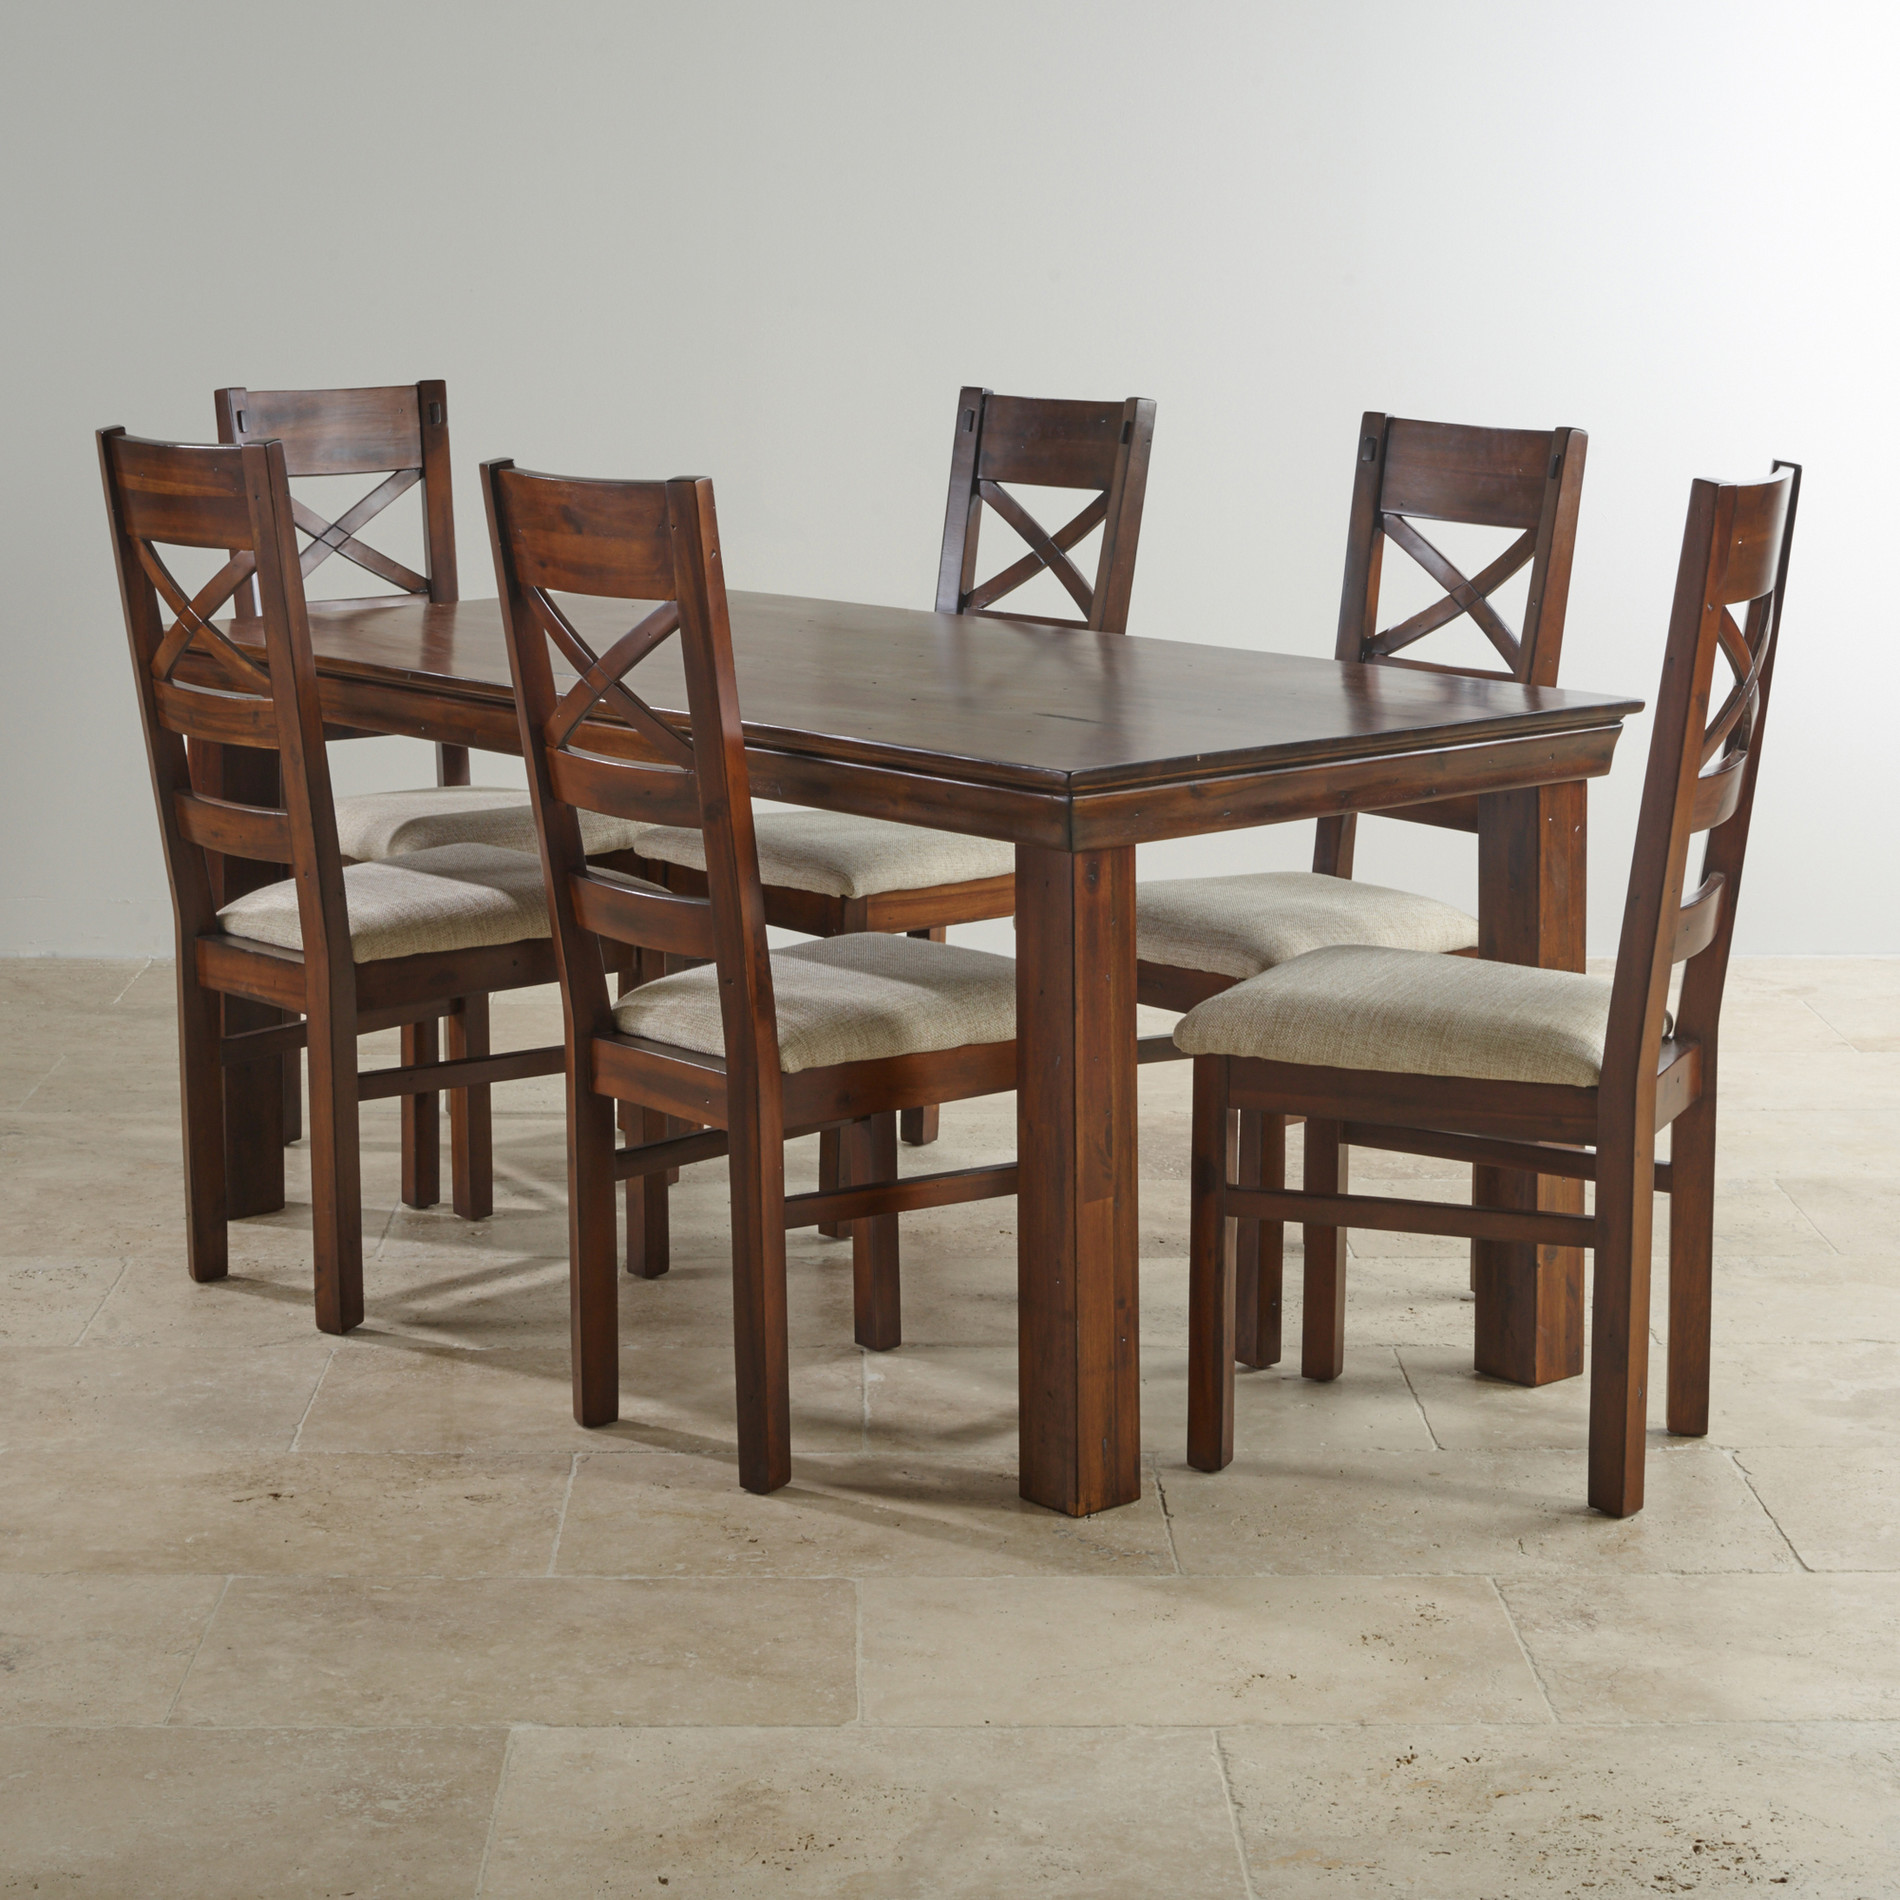 Victoria solid hardwood dining set ft table with